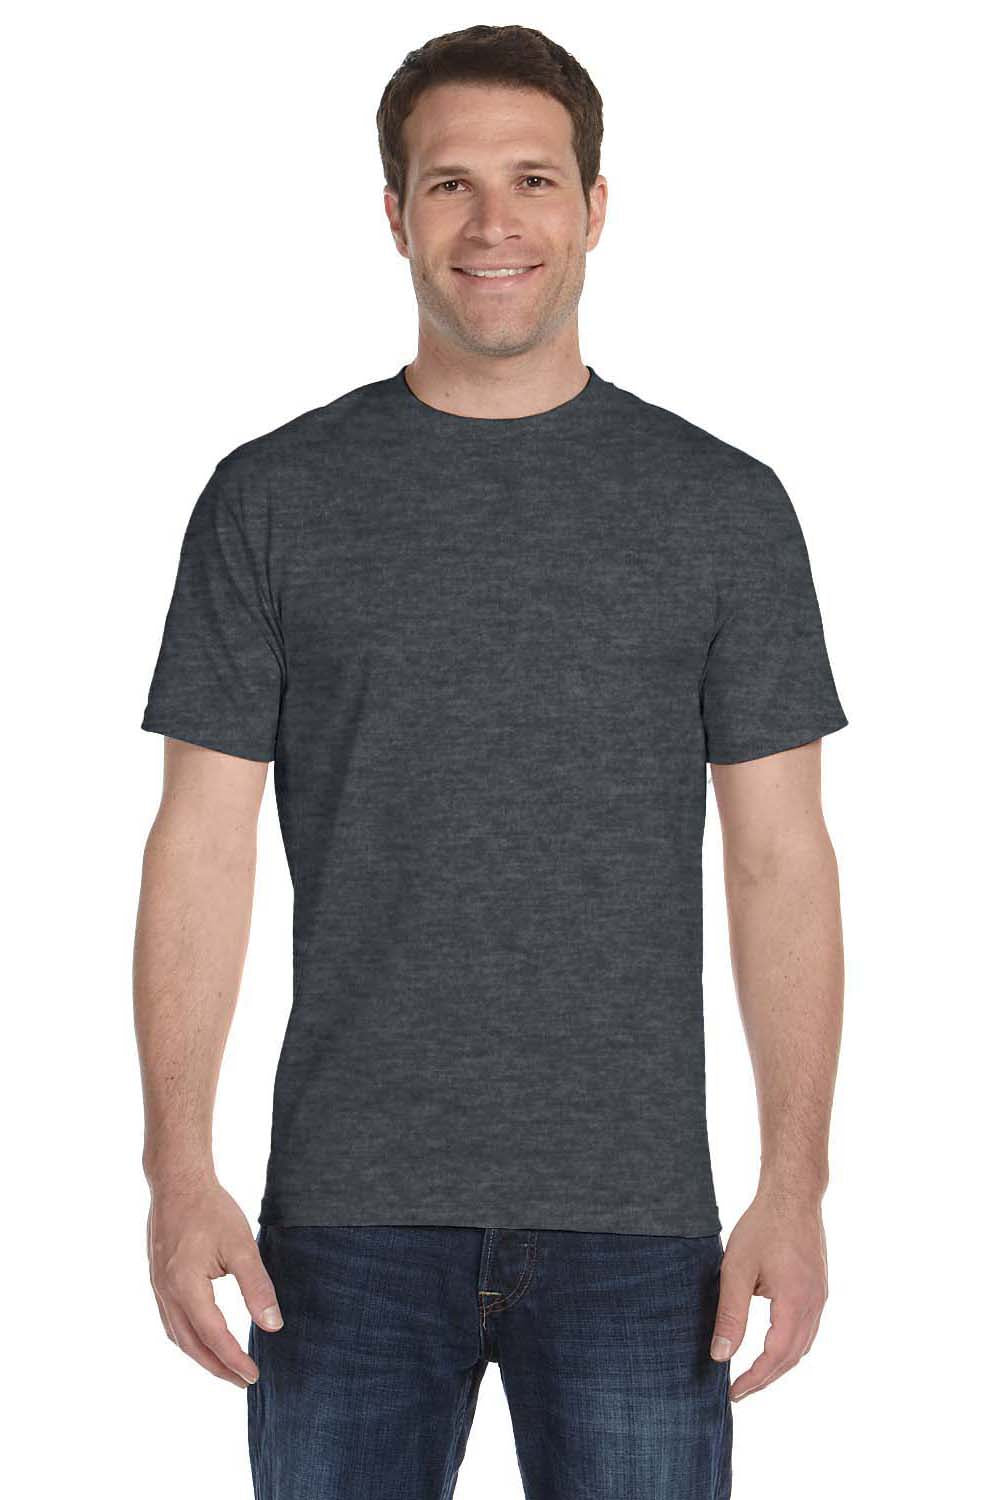 Gildan G800 Mens DryBlend Moisture Wicking Short Sleeve Crewneck T-Shirt Heather Dark Grey Front